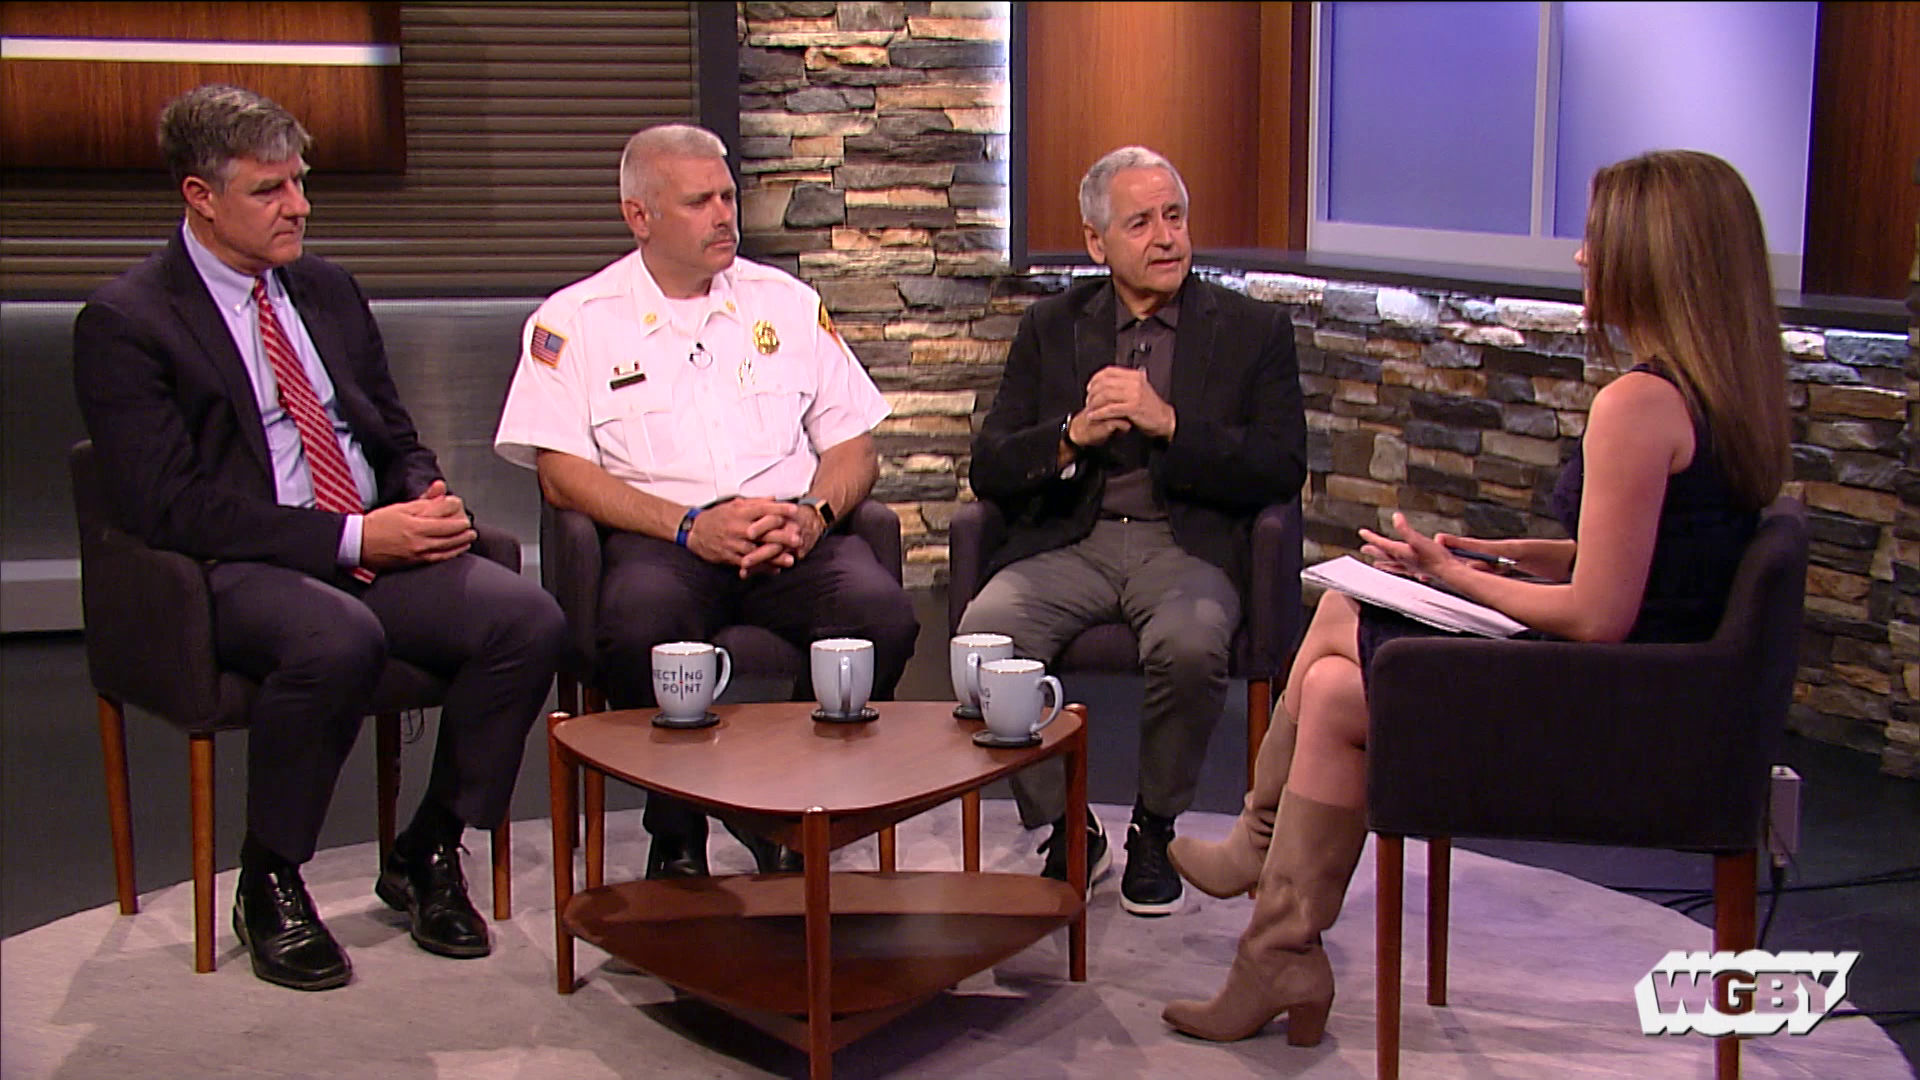 The Springfield September 11th Monument will honor the lives lost on September 11, 2001. Project volunteers, including Springfield Fire Department Commissioner Bernard Calvi, discuss their efforts to raise $300,000 for the monument, with the intention of installing it in Riverfront Park this fall.